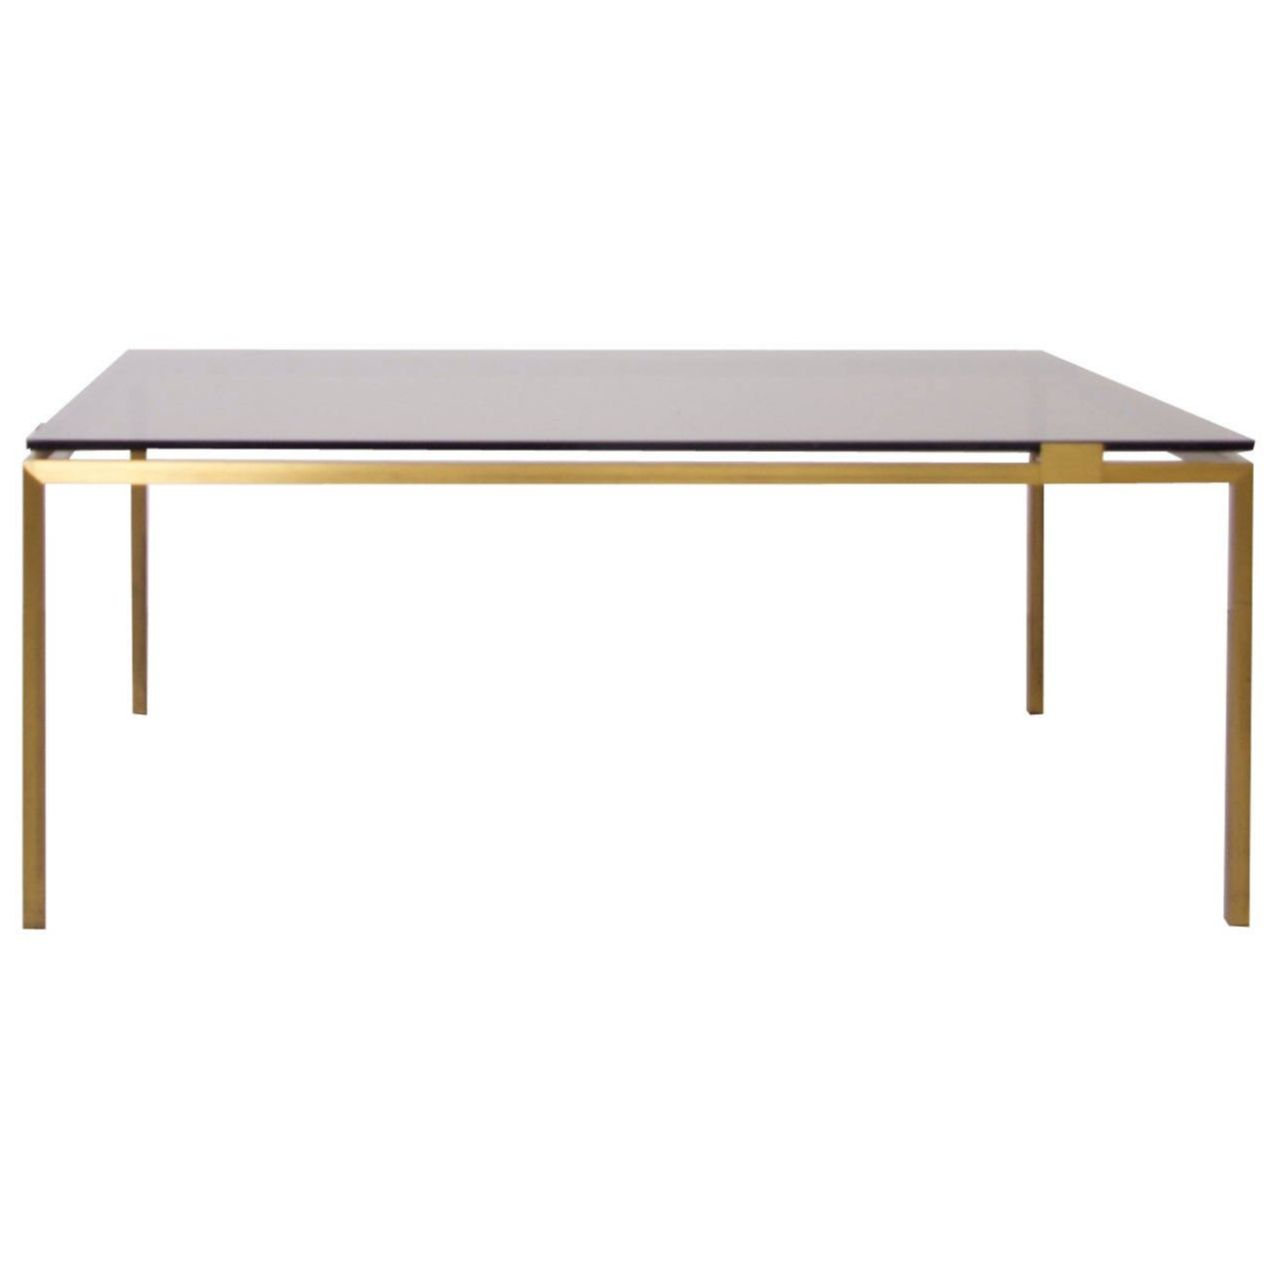 - Elegant Brass And Glass Coffee Table In The Manner Of Maison Jansen